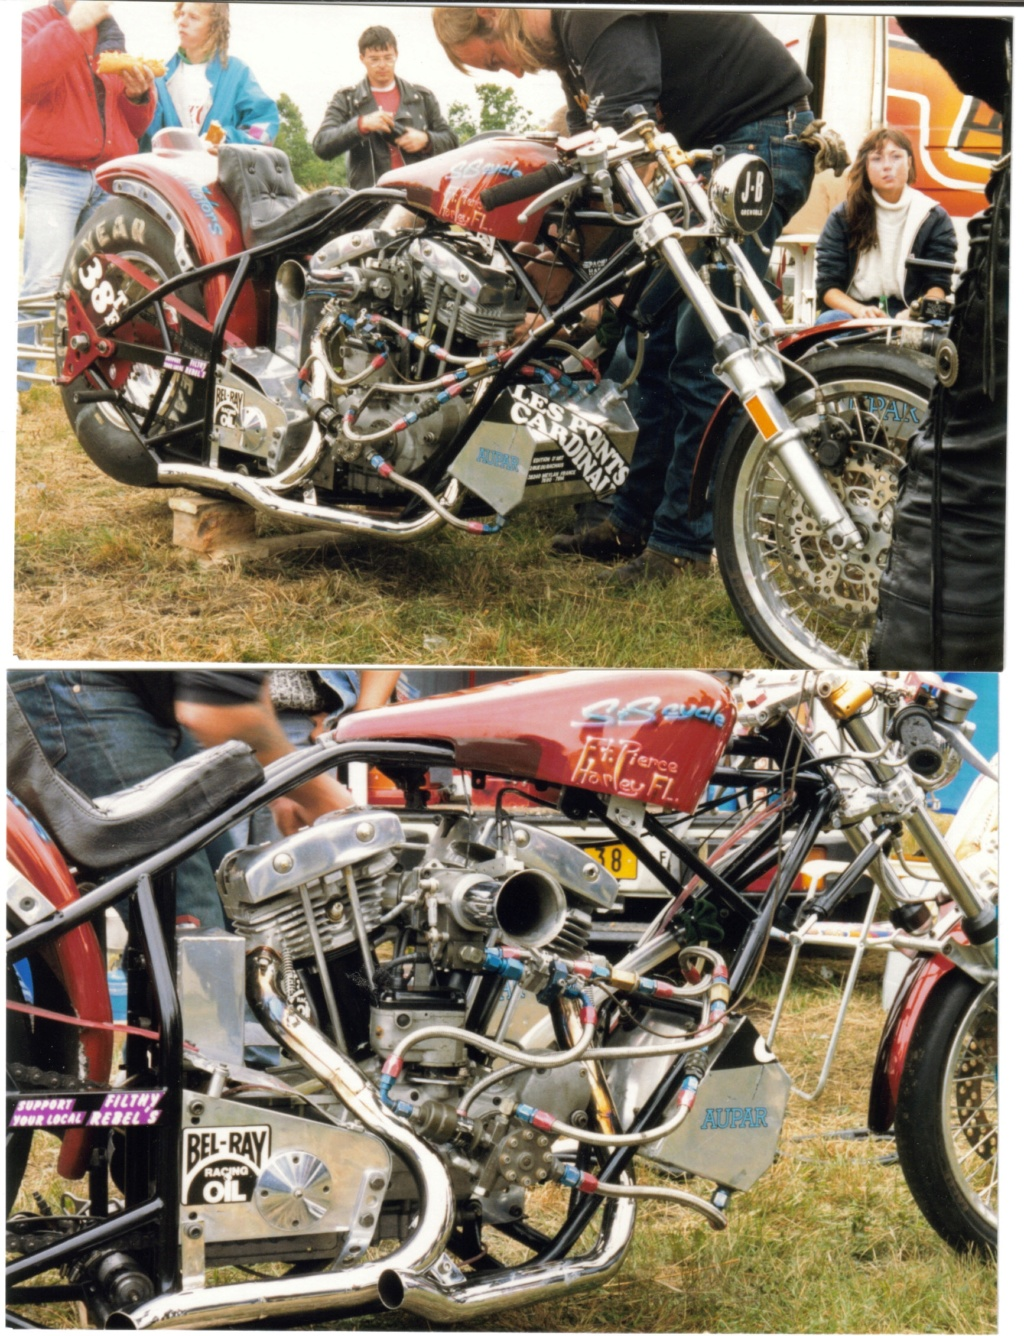 dragster guiscriff 1989 Harley10